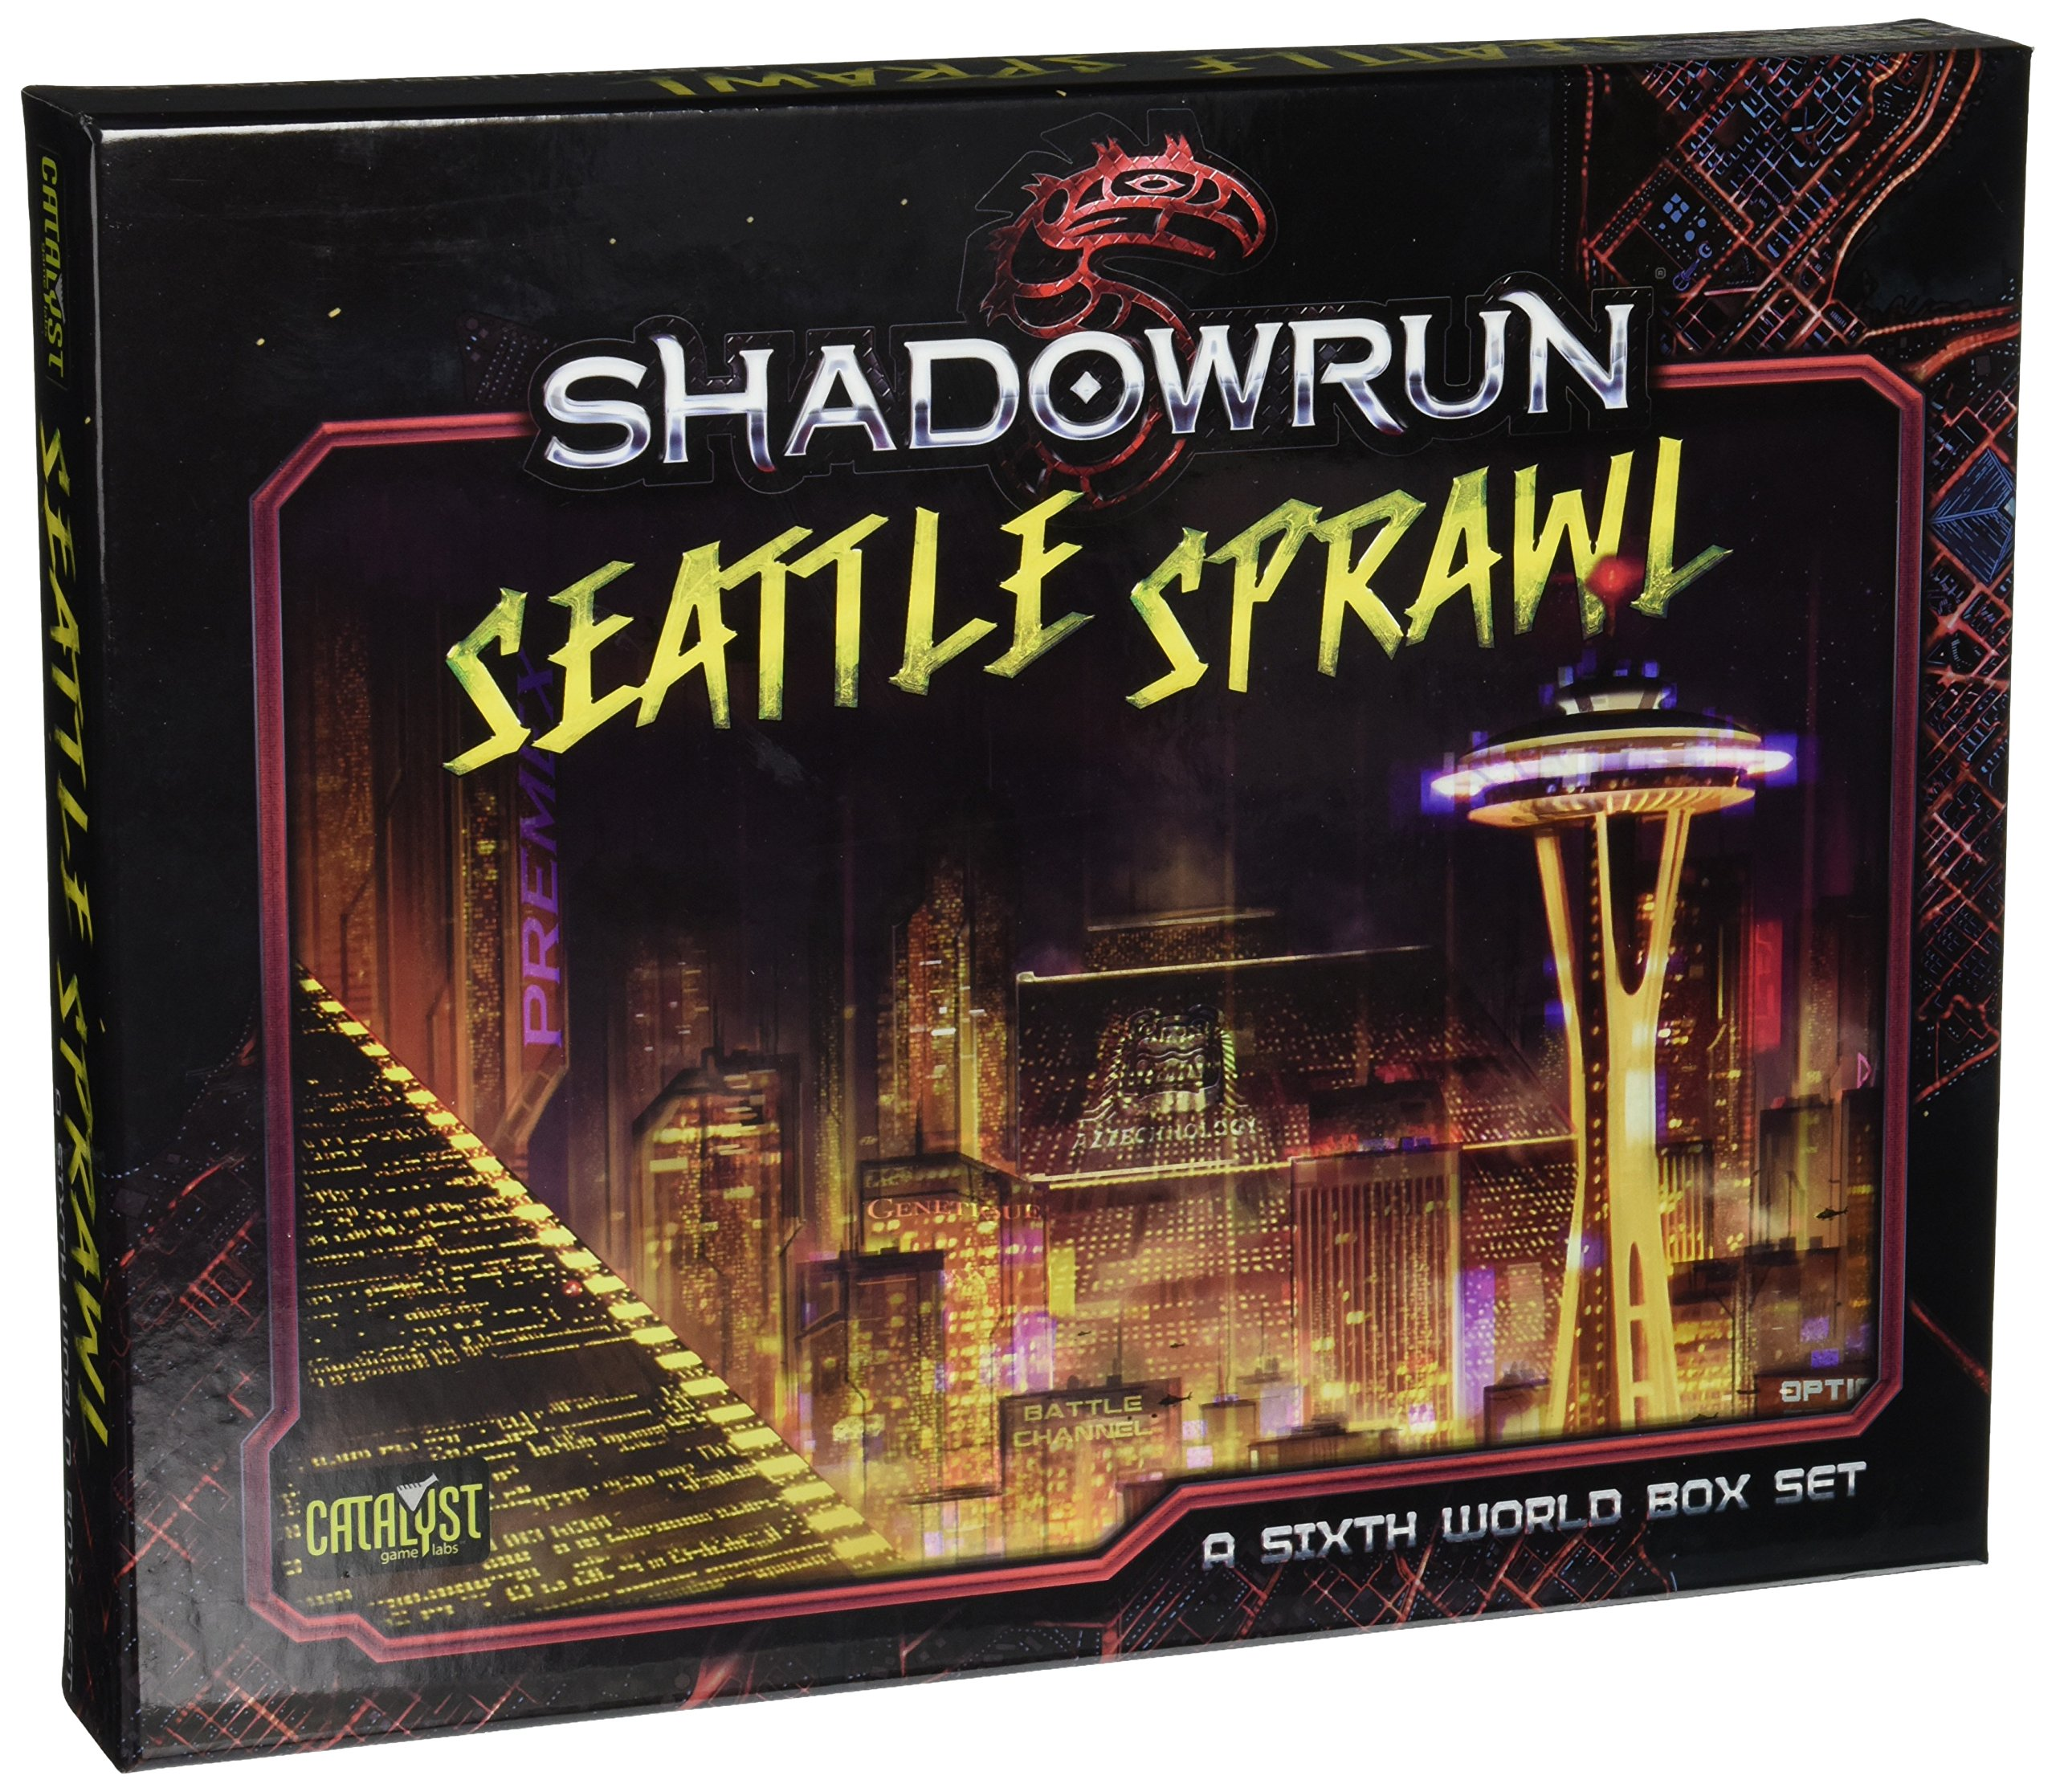 Shadowrun America Map.Shadowrun Seattle Box Set 9781941582930 Amazon Com Books